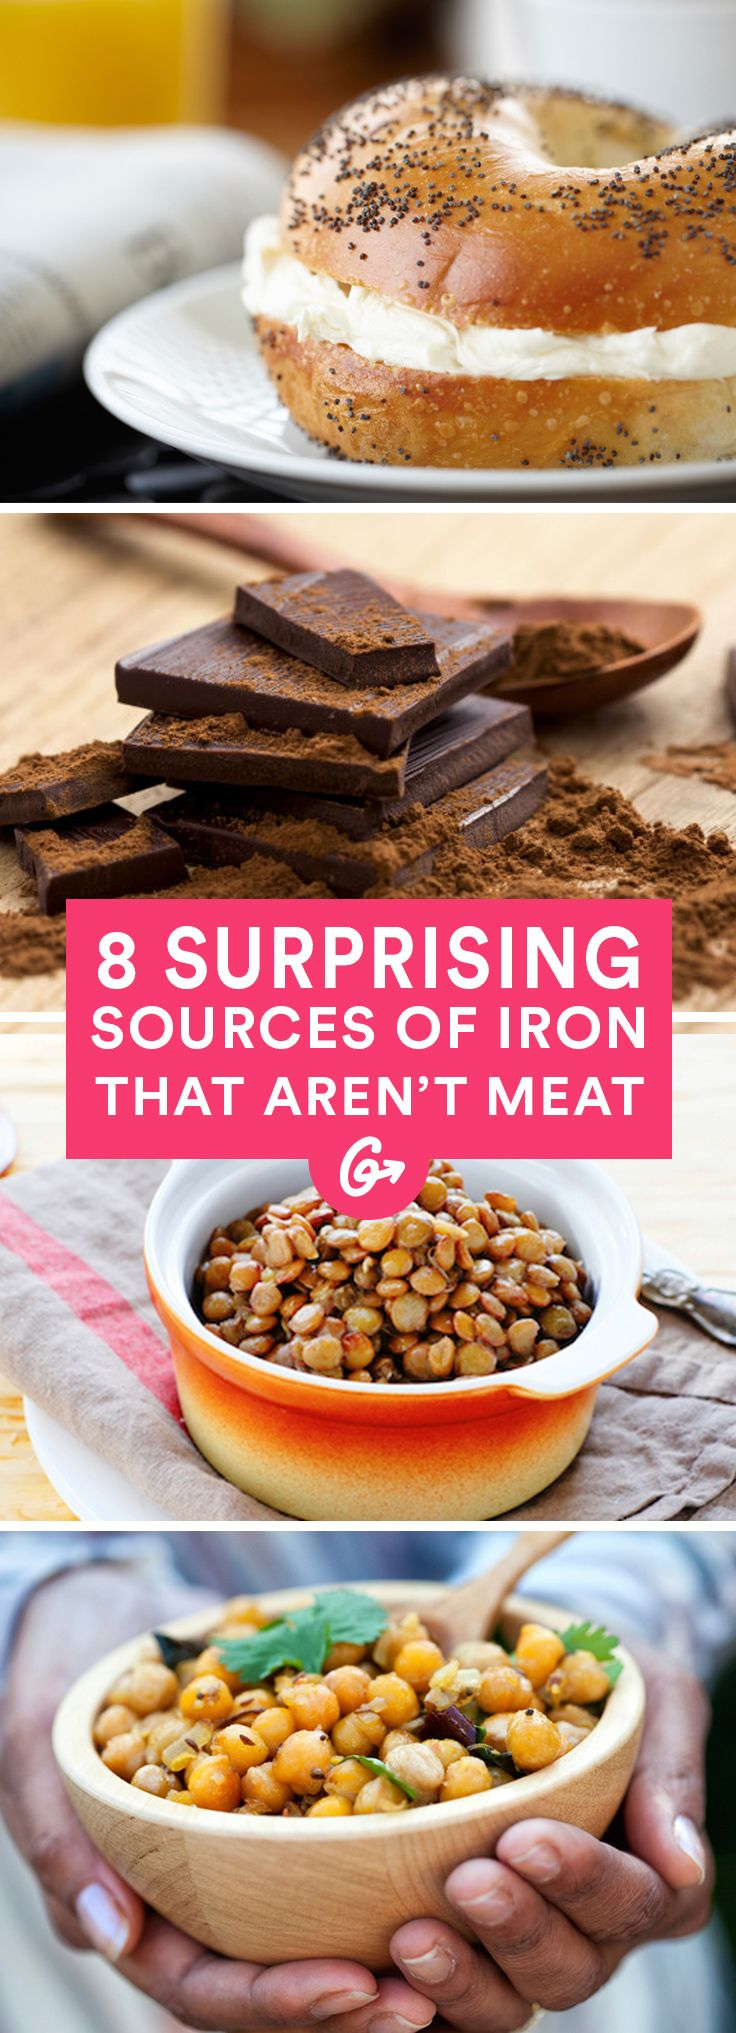 You don't need to chow down on steak to get your daily dose of this essential mineral. #iron #vegetarian http://greatist.com/eat/surprising-foods-high-in-iron